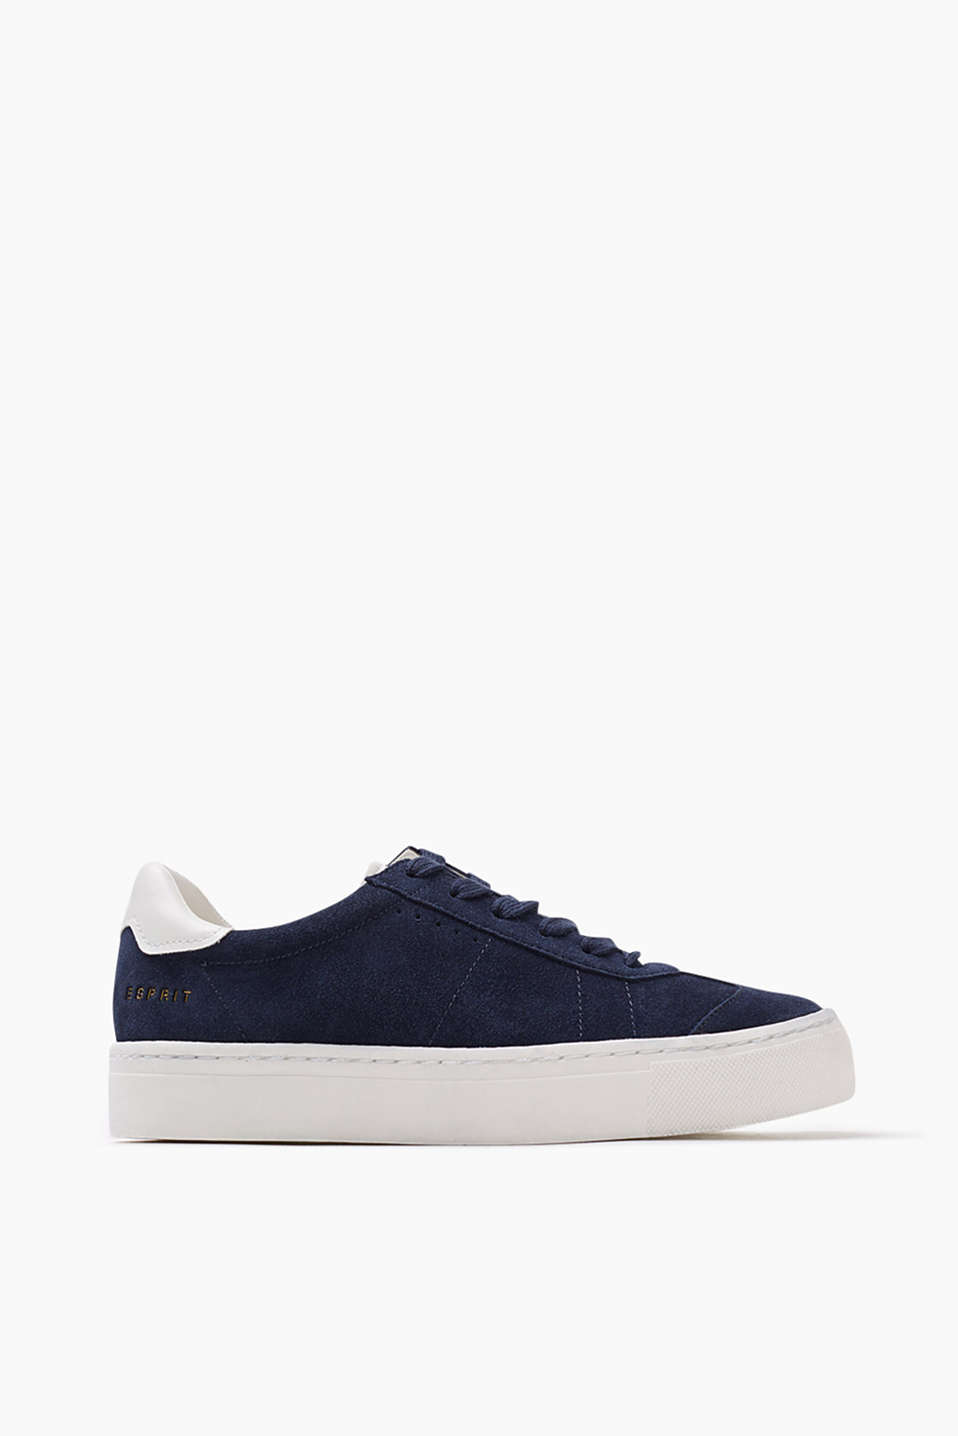 In a retro look: Lace-up trainers with a rubber sole, in suede